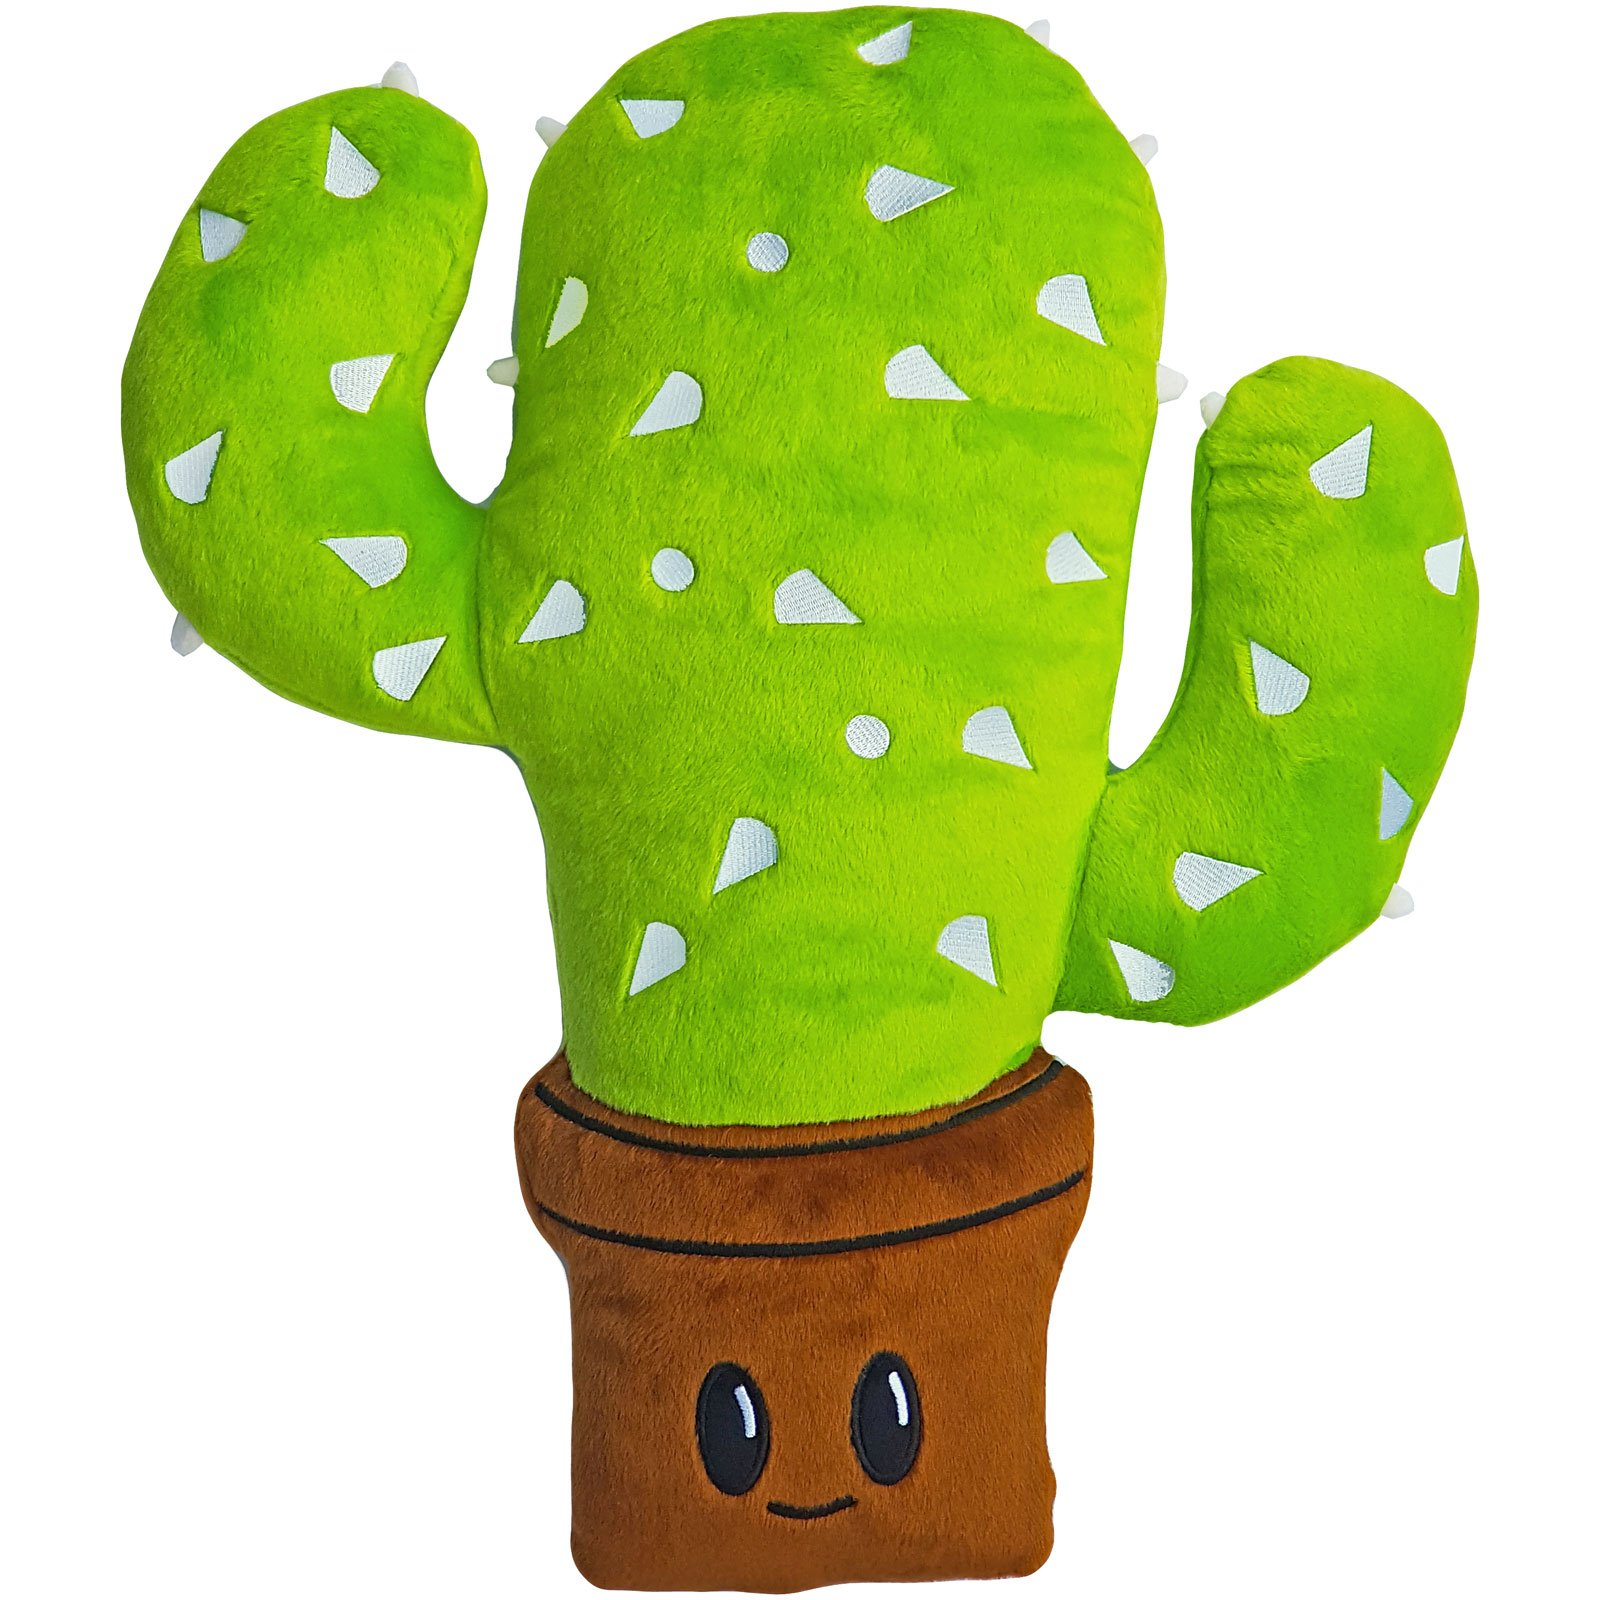 EpicStun Kaktus Kissen Emoticon Smiley Cactus